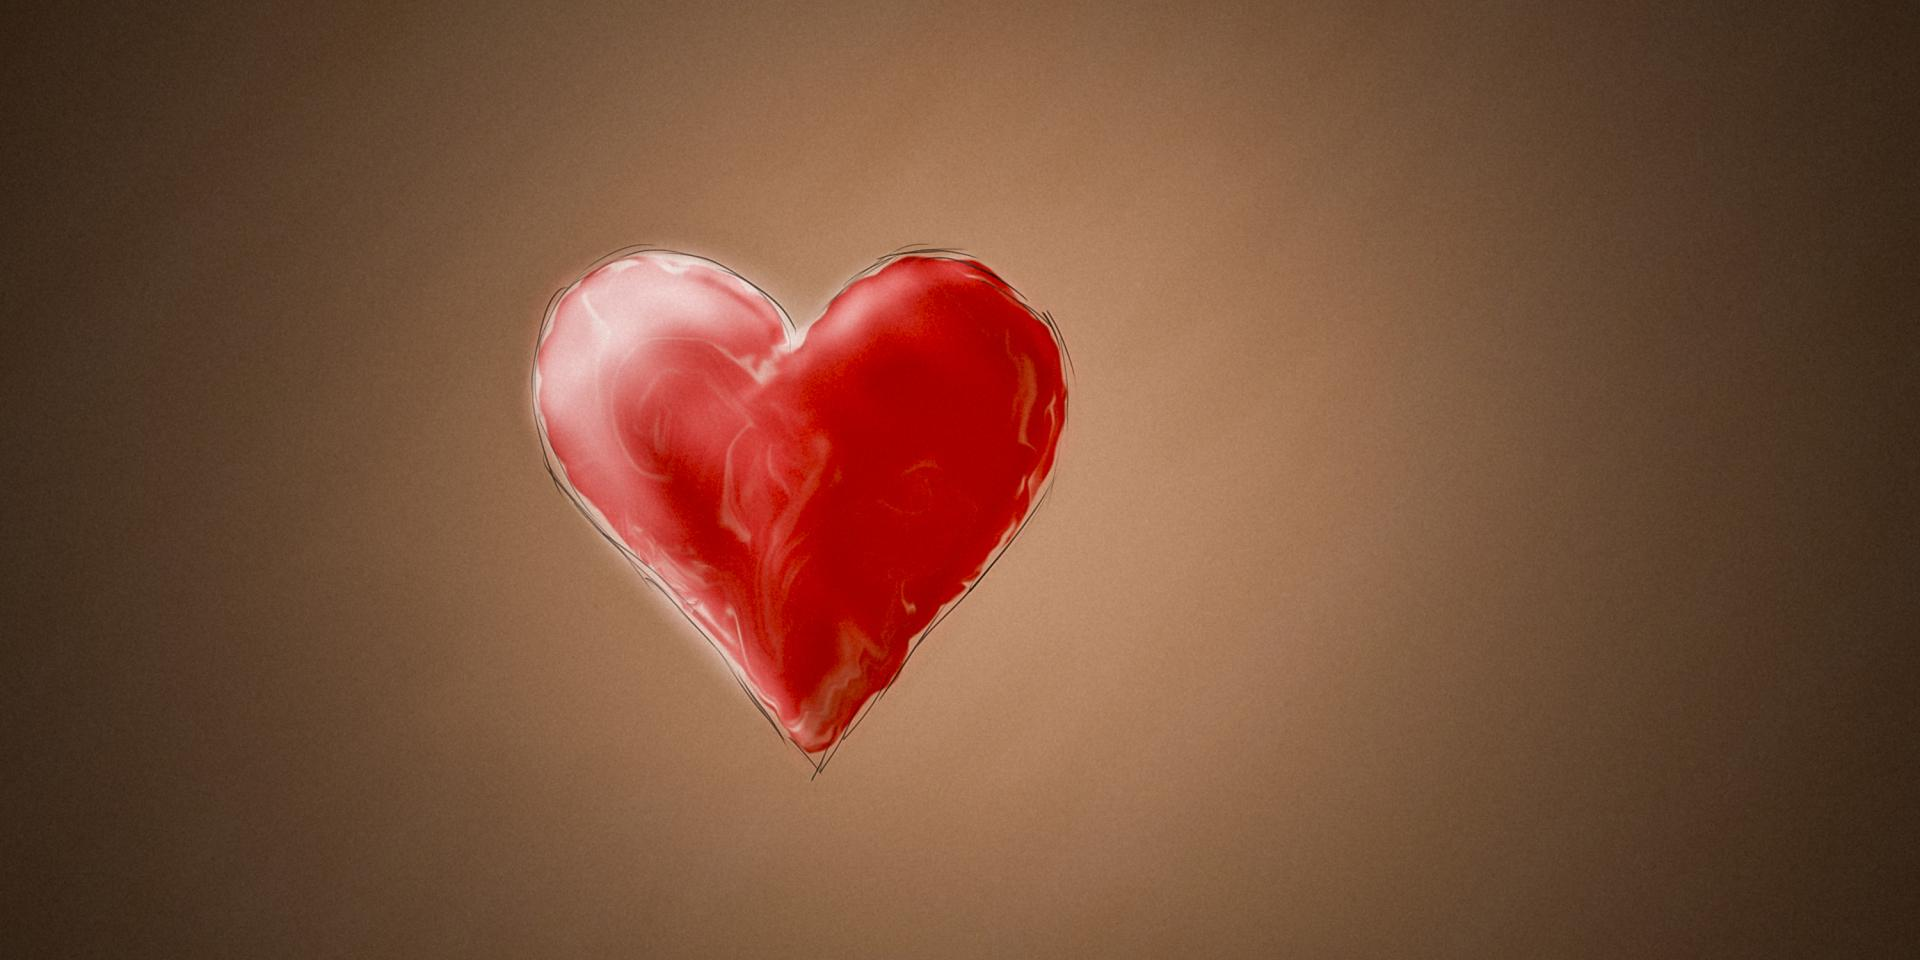 Heart Artistic wallpapers HD quality